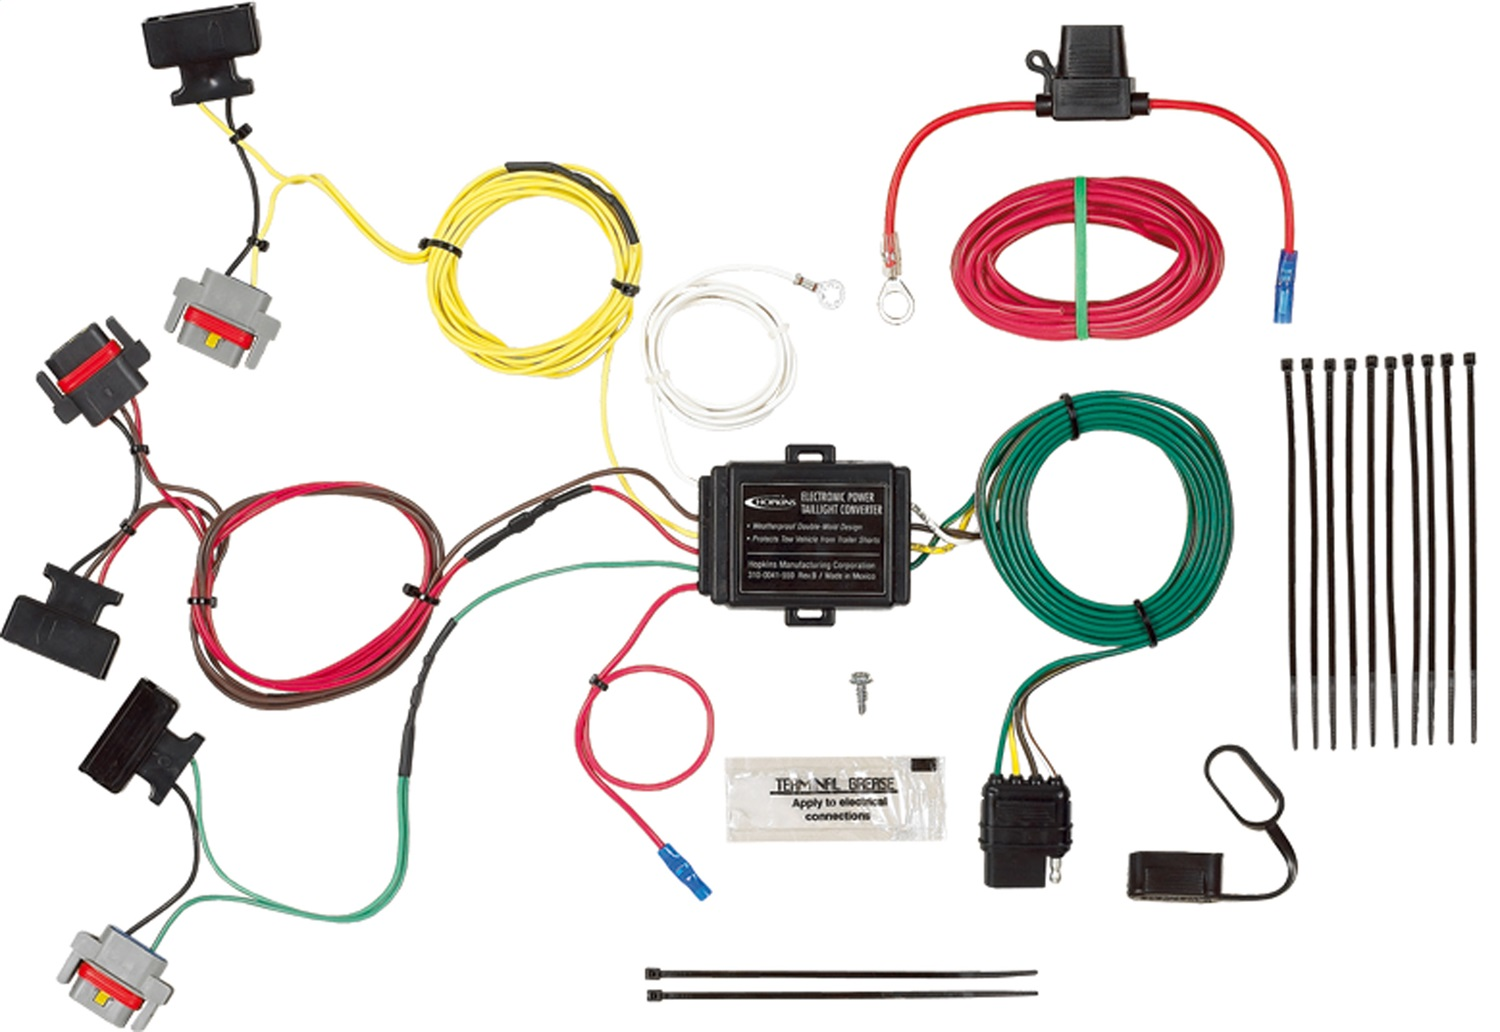 Trailer Wiring Harness Walmart - All Wiring Diagram on